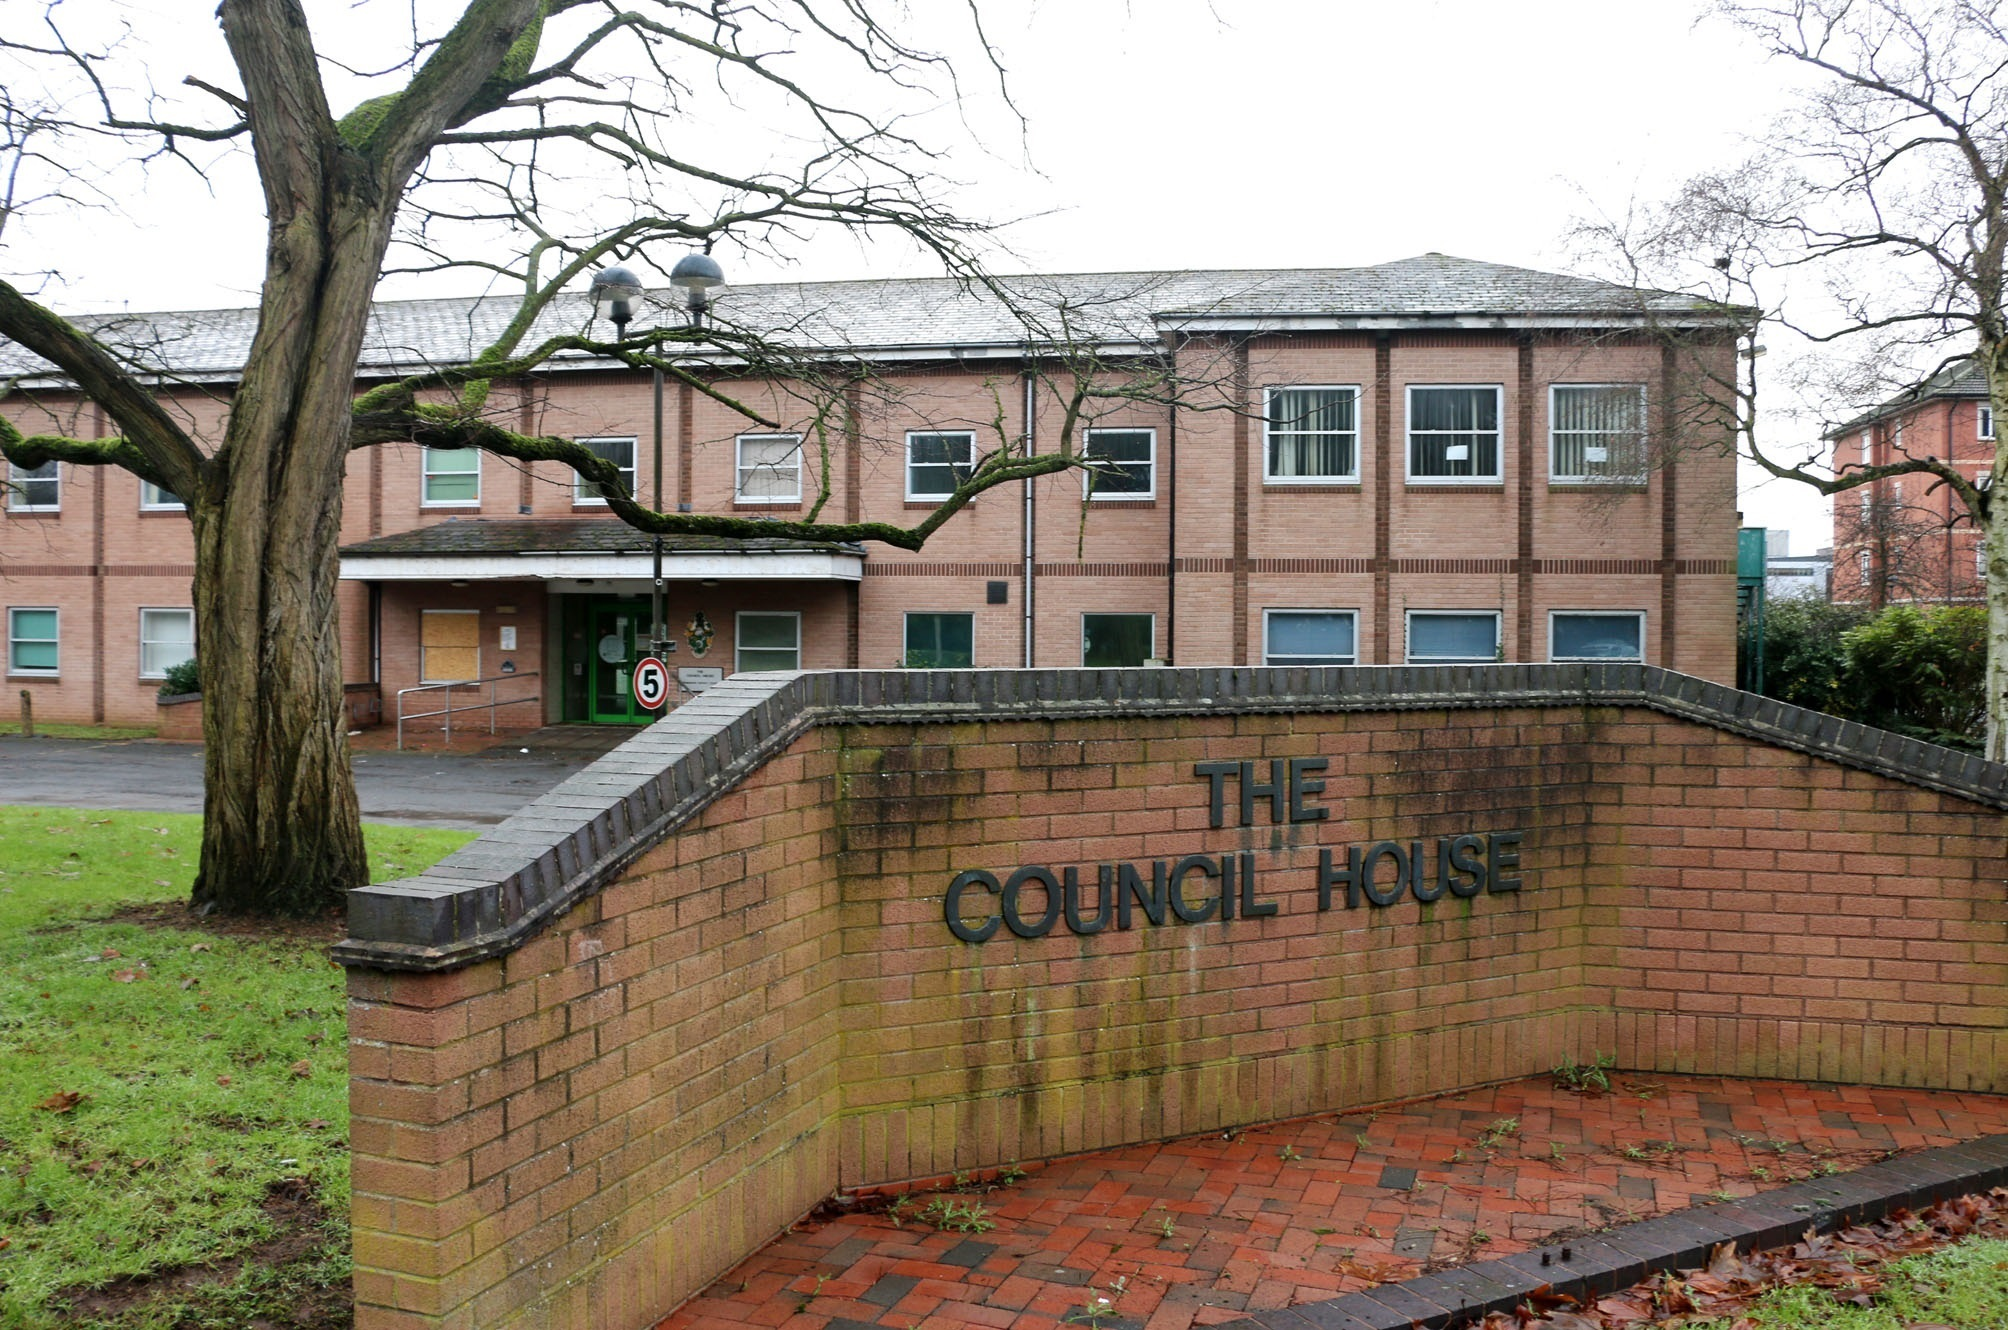 The old council house on Burcot Lane is set to be demolished